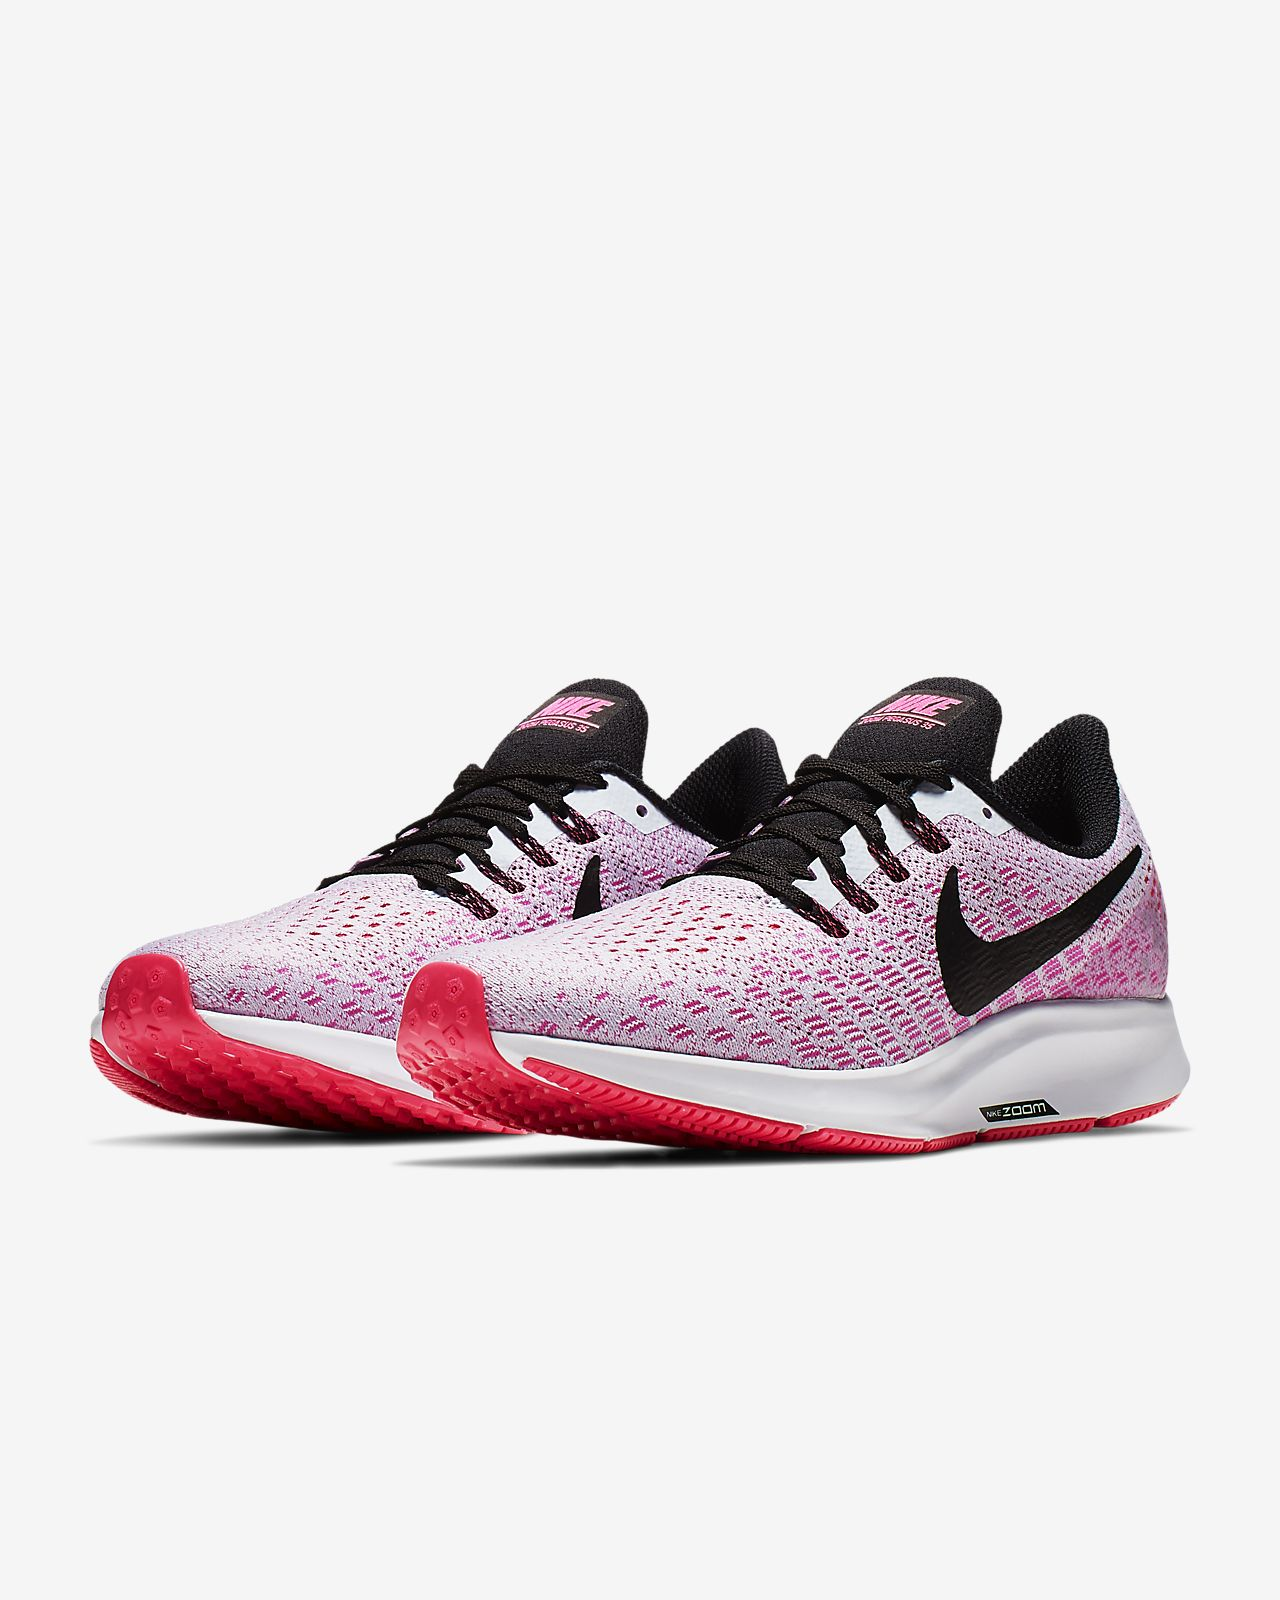 30efef9bce991 Low Resolution Nike Air Zoom Pegasus 35 Women s Running Shoe Nike Air Zoom  Pegasus 35 Women s Running Shoe